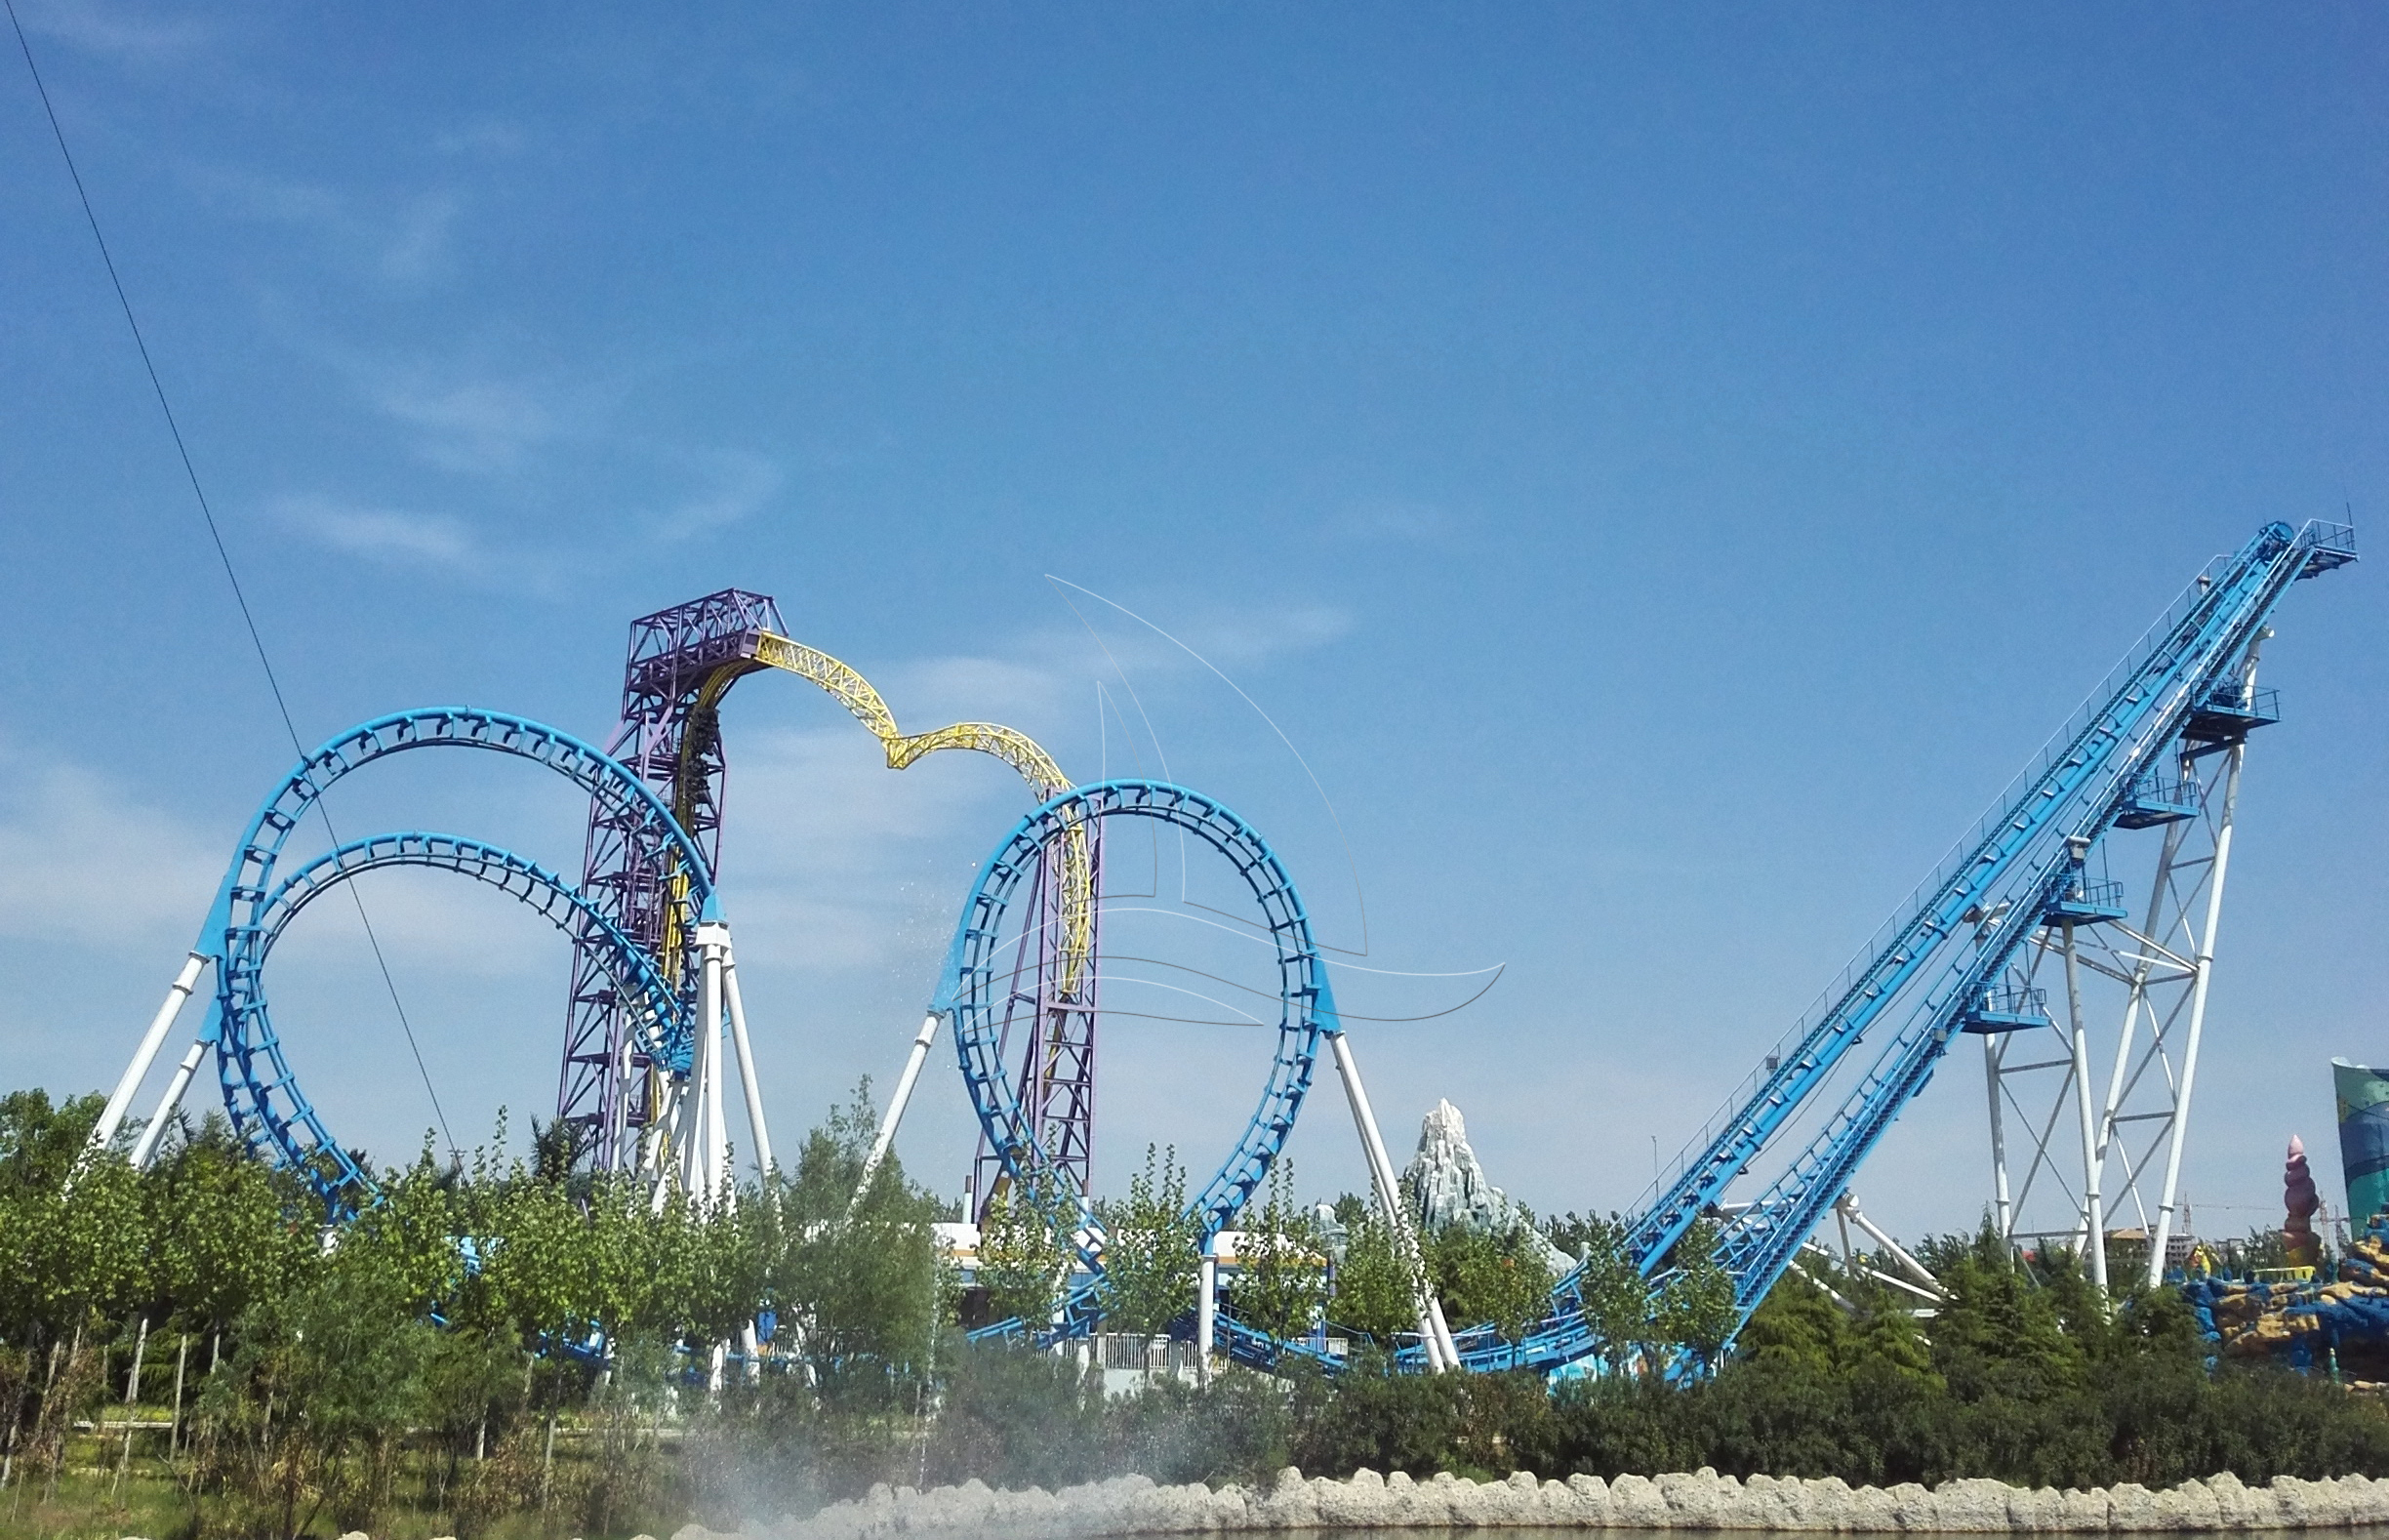 Do You Have A Roller Coaster Theme Park to Have Fun?